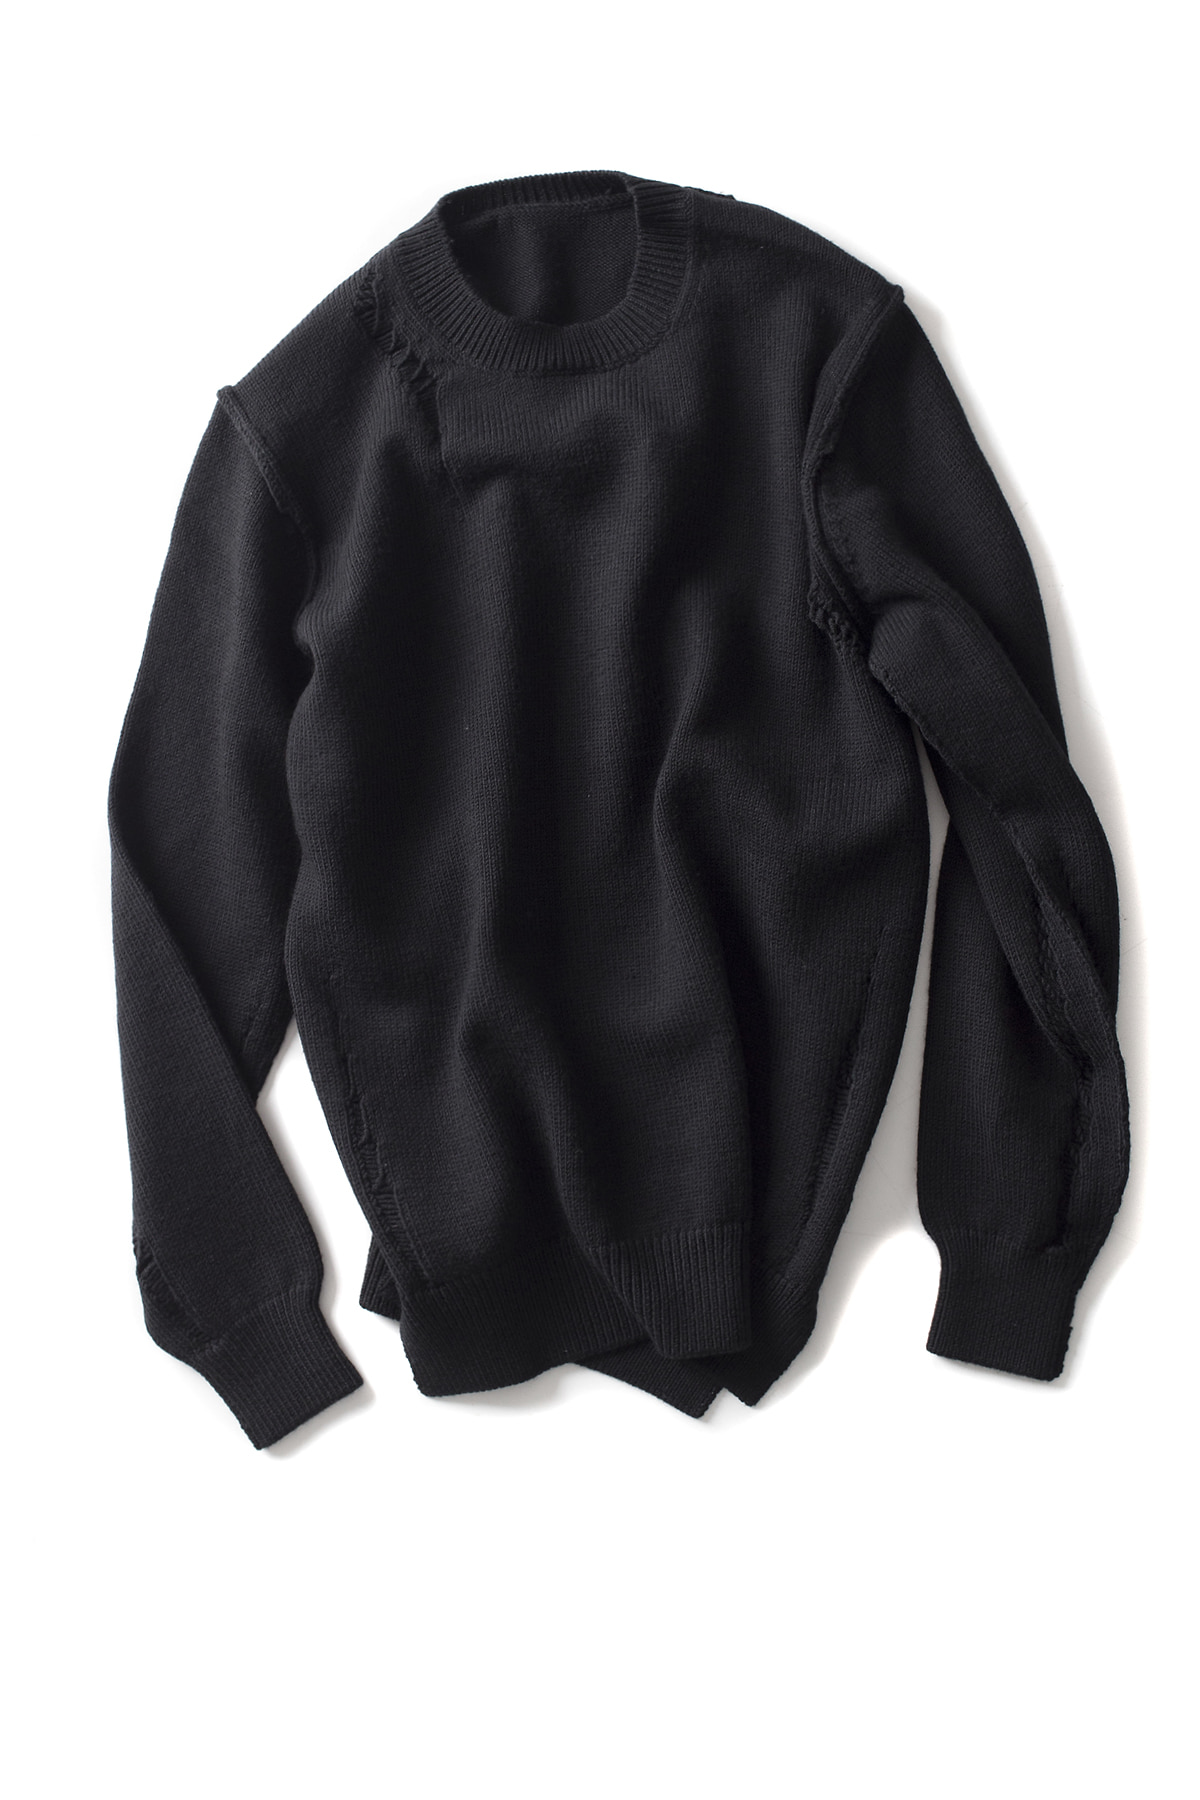 ATTACHMENT / KAZYUKI KUMAGAI : Wool Cord Crewneck Pullover (Black)